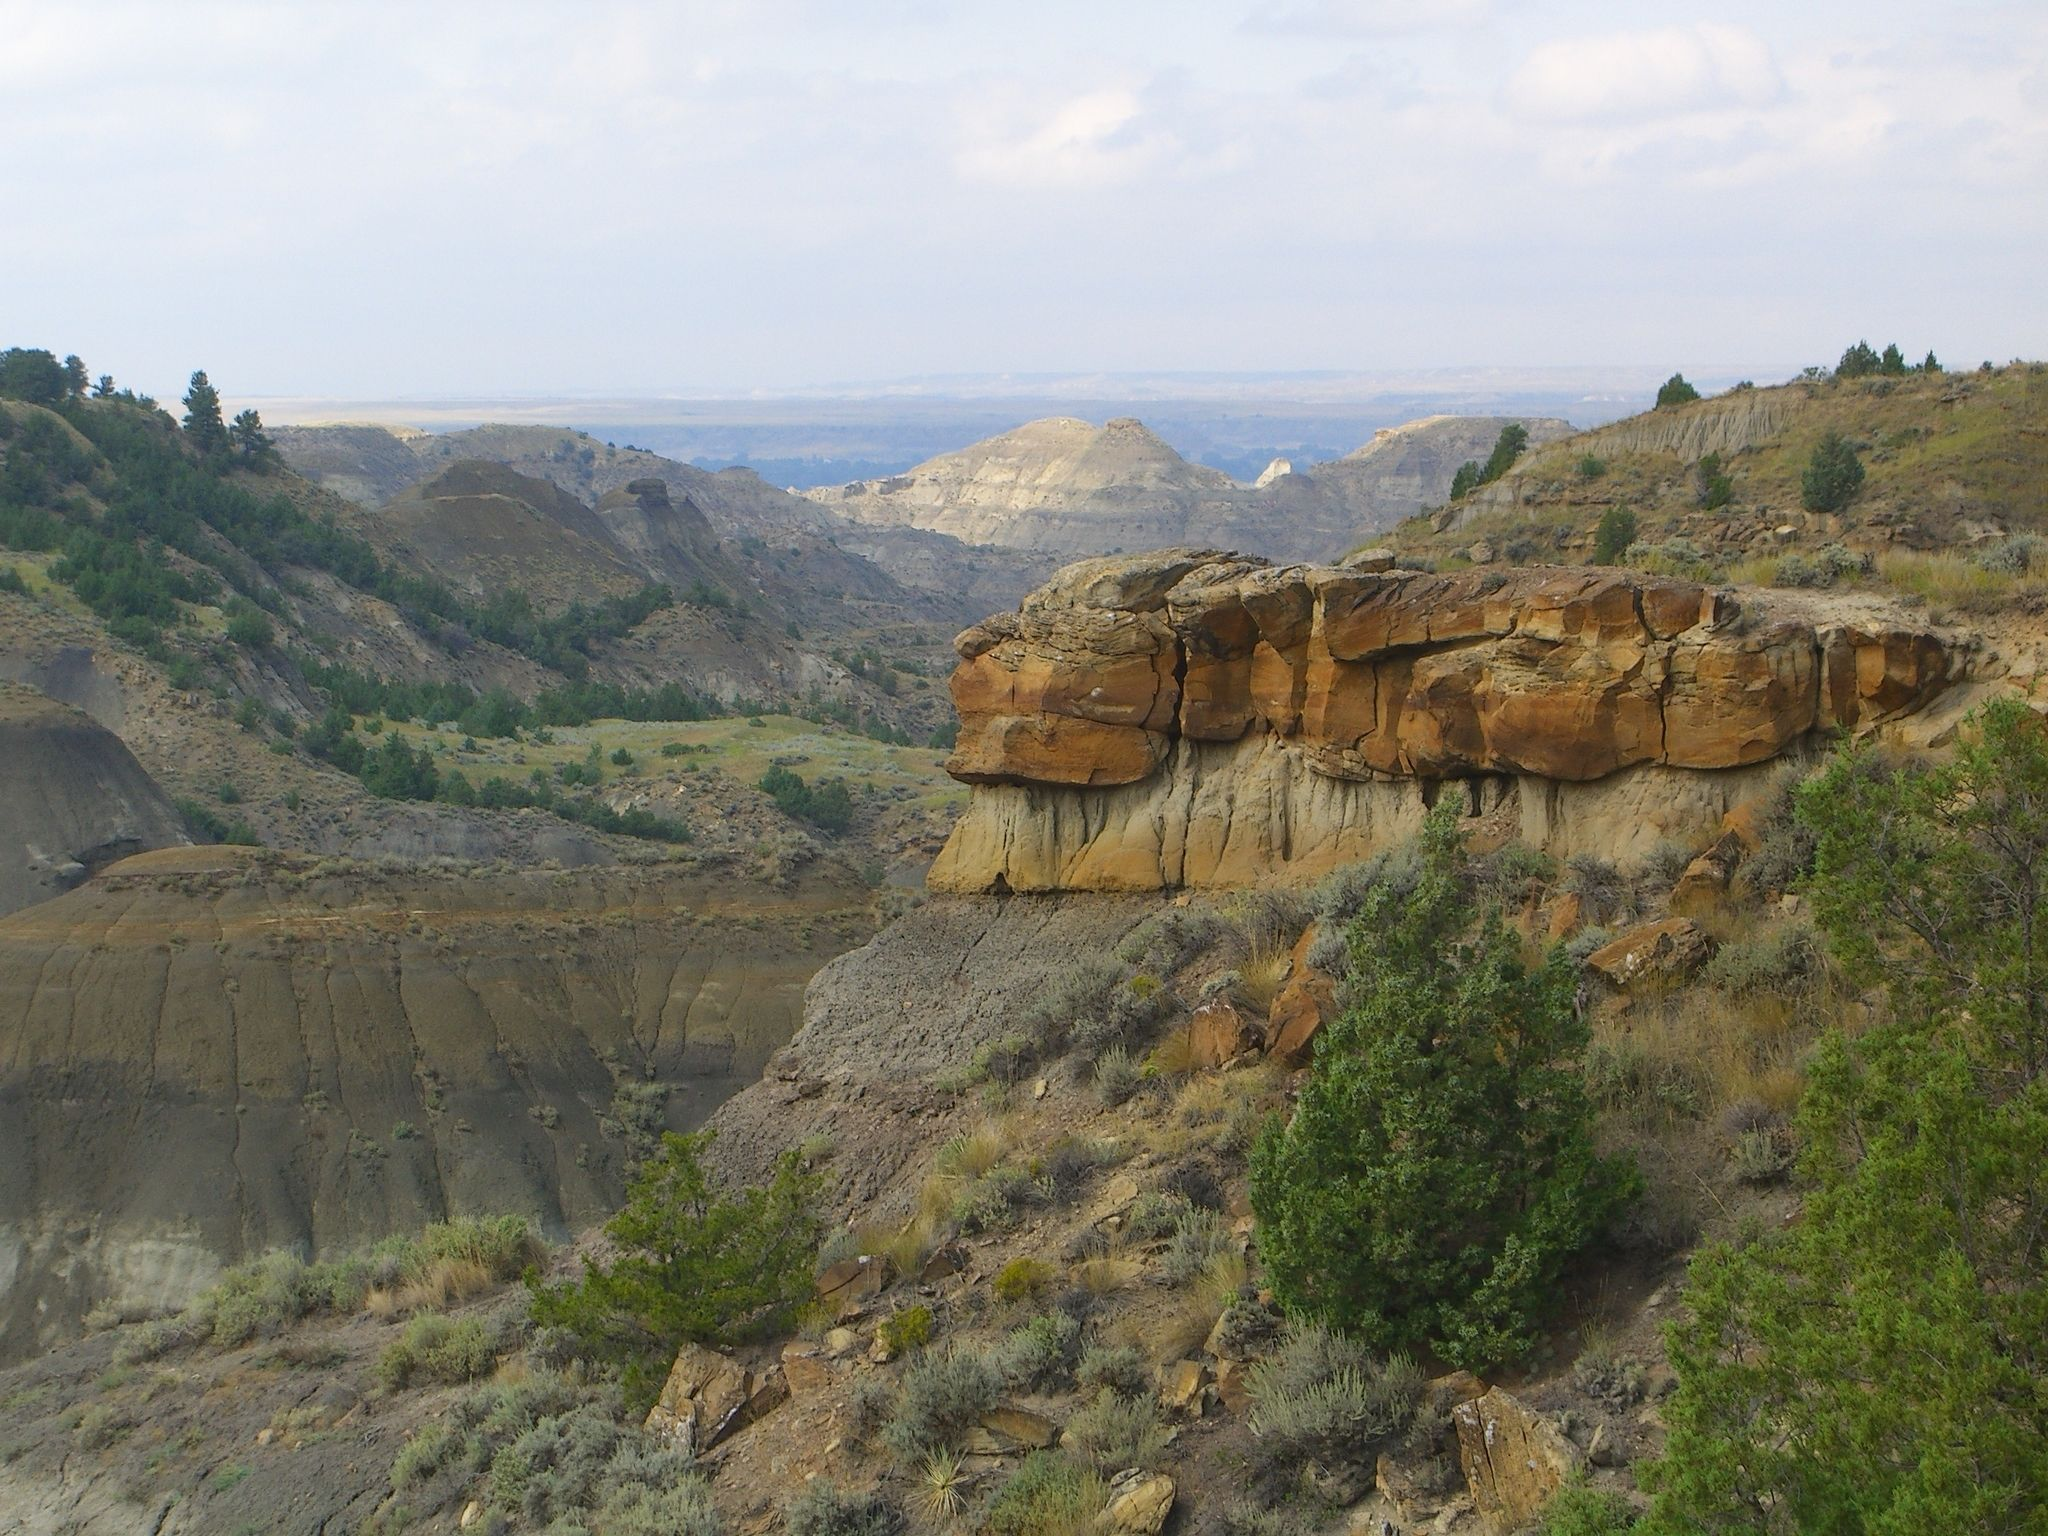 hot springs national park senior dating site The people of hot springs, sd were great we went on a 2 1/ 2 week vacation to rapid city, cody,yellowst one national park, billings, & back through deadwood paul swenson september 16, 2016.